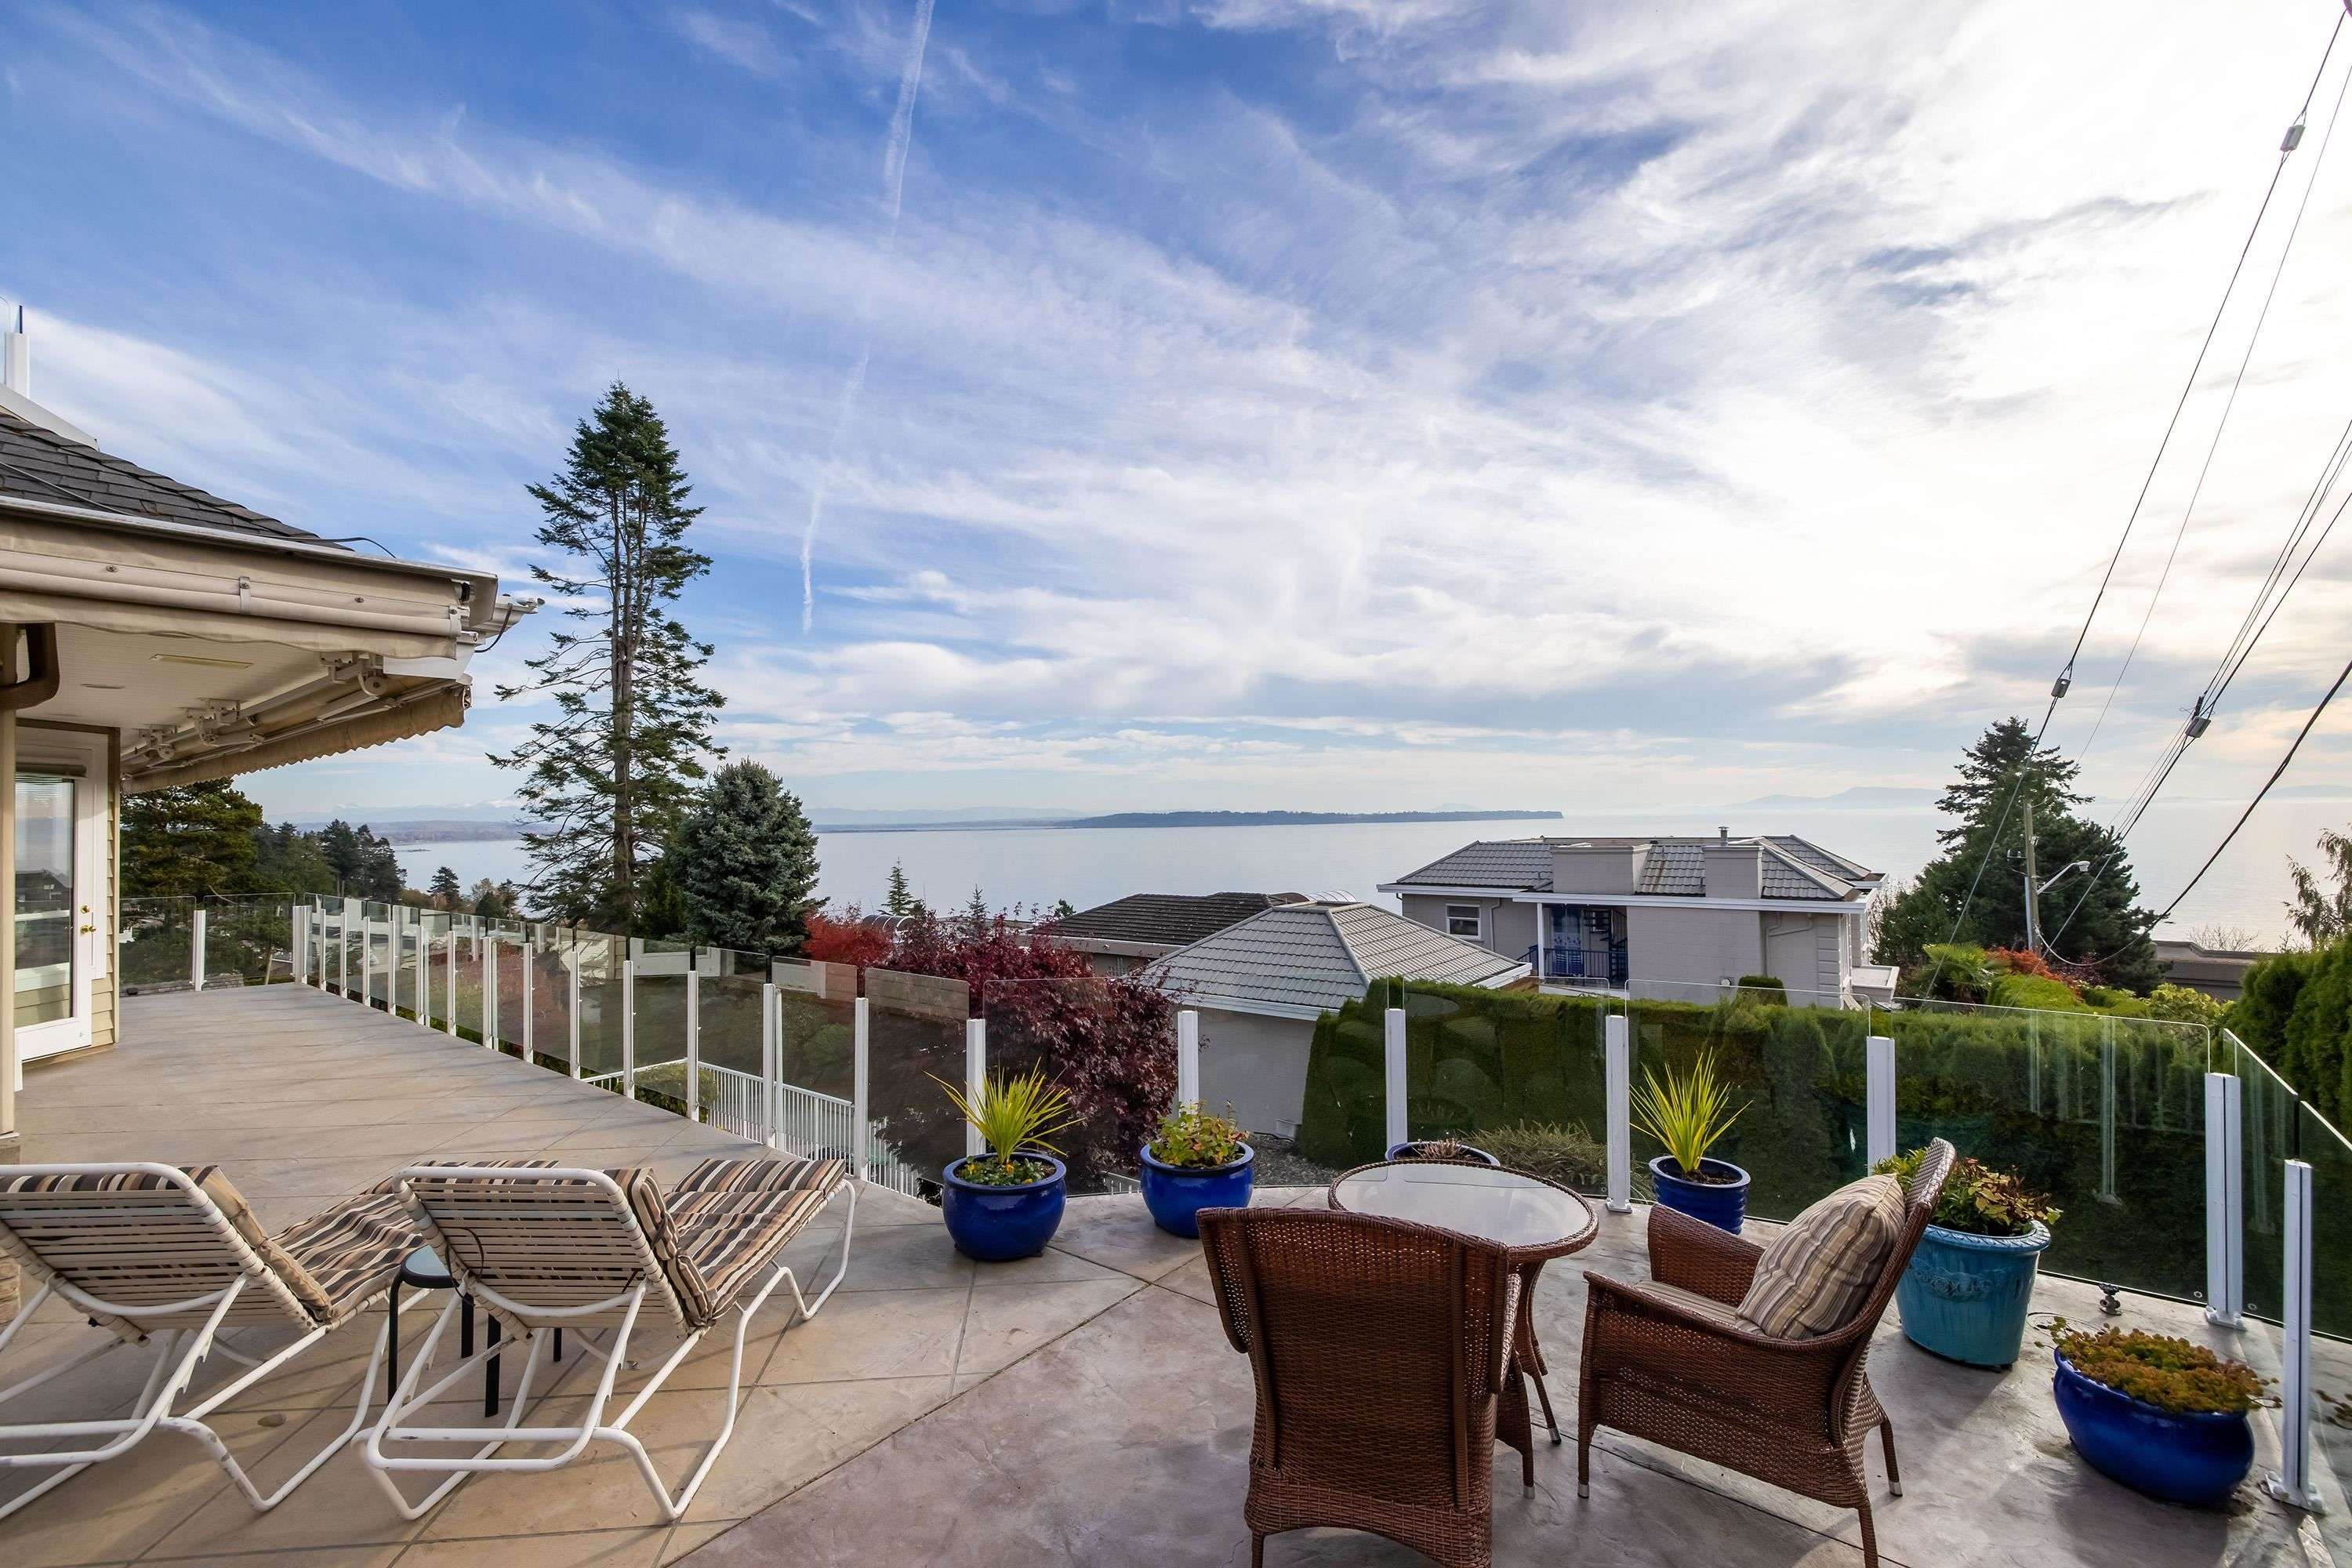 Main Photo: 1330 131 Street in Surrey: Crescent Bch Ocean Pk. House for sale (South Surrey White Rock)  : MLS®# R2612809